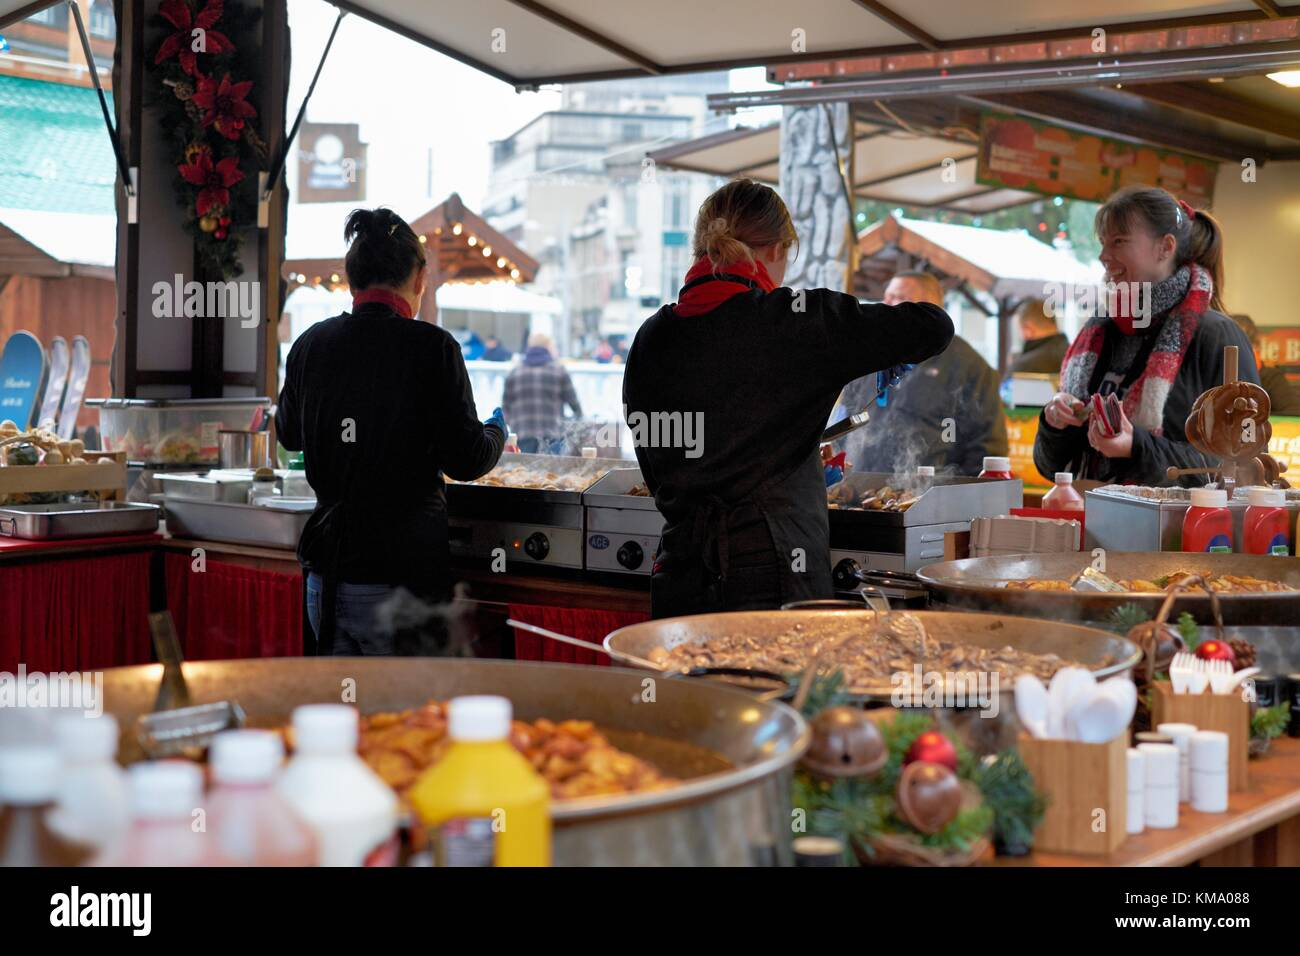 Nottingham Christmas market  2017 food being served on a food stall - Stock Image